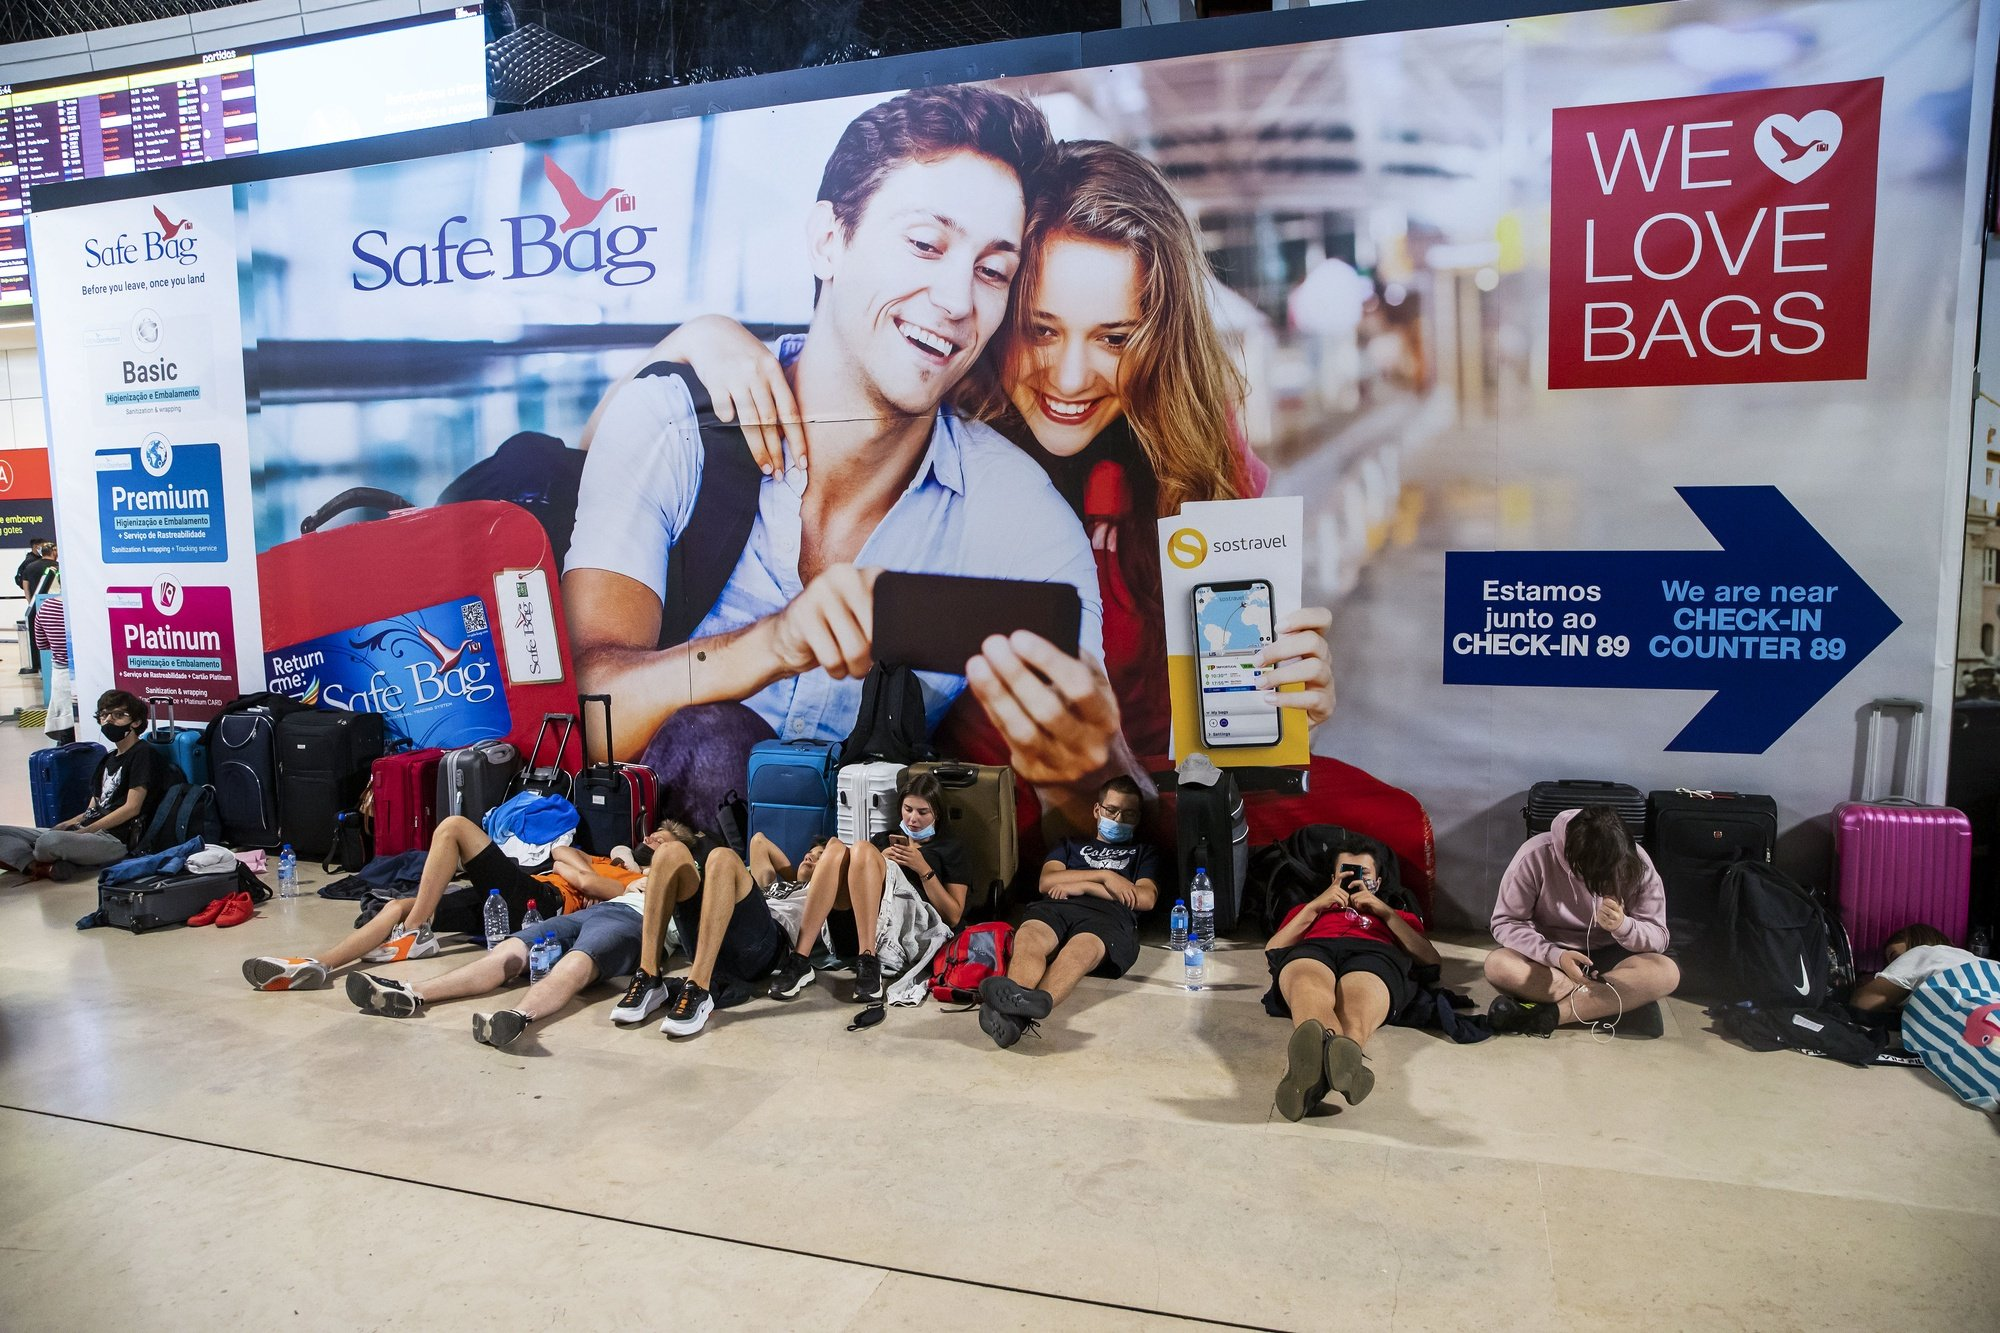 Passengers lay on the floor as they wait for their flight due to a strike of the handling company, Groundforce, which is causing major disruption in the Lisbon Airport, causing the cancelation of dozens of flights, in Lisbon, Portugal, 17 July 2021. Groundforce workers are protesting against colective dismissal of workers and low salaries. JOSE SENA GOULAO/LUSA